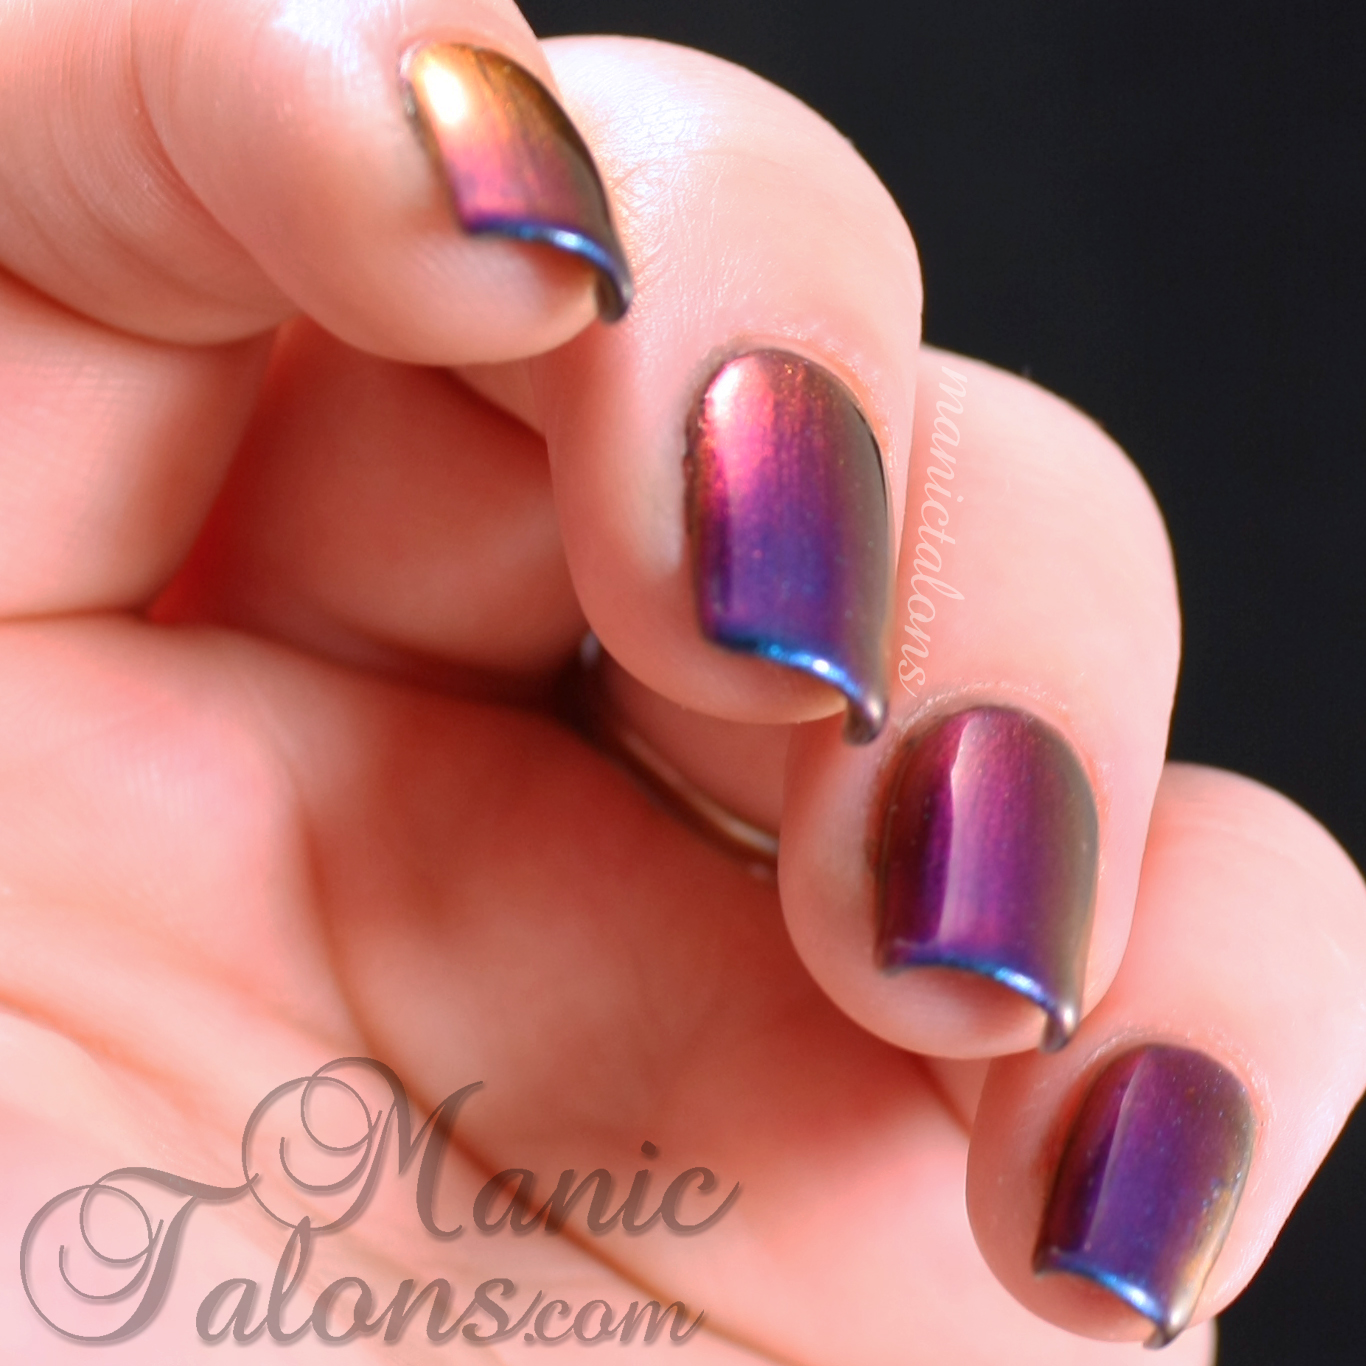 Girly Bits Wave the Sails Swatch over Black Gel Polish